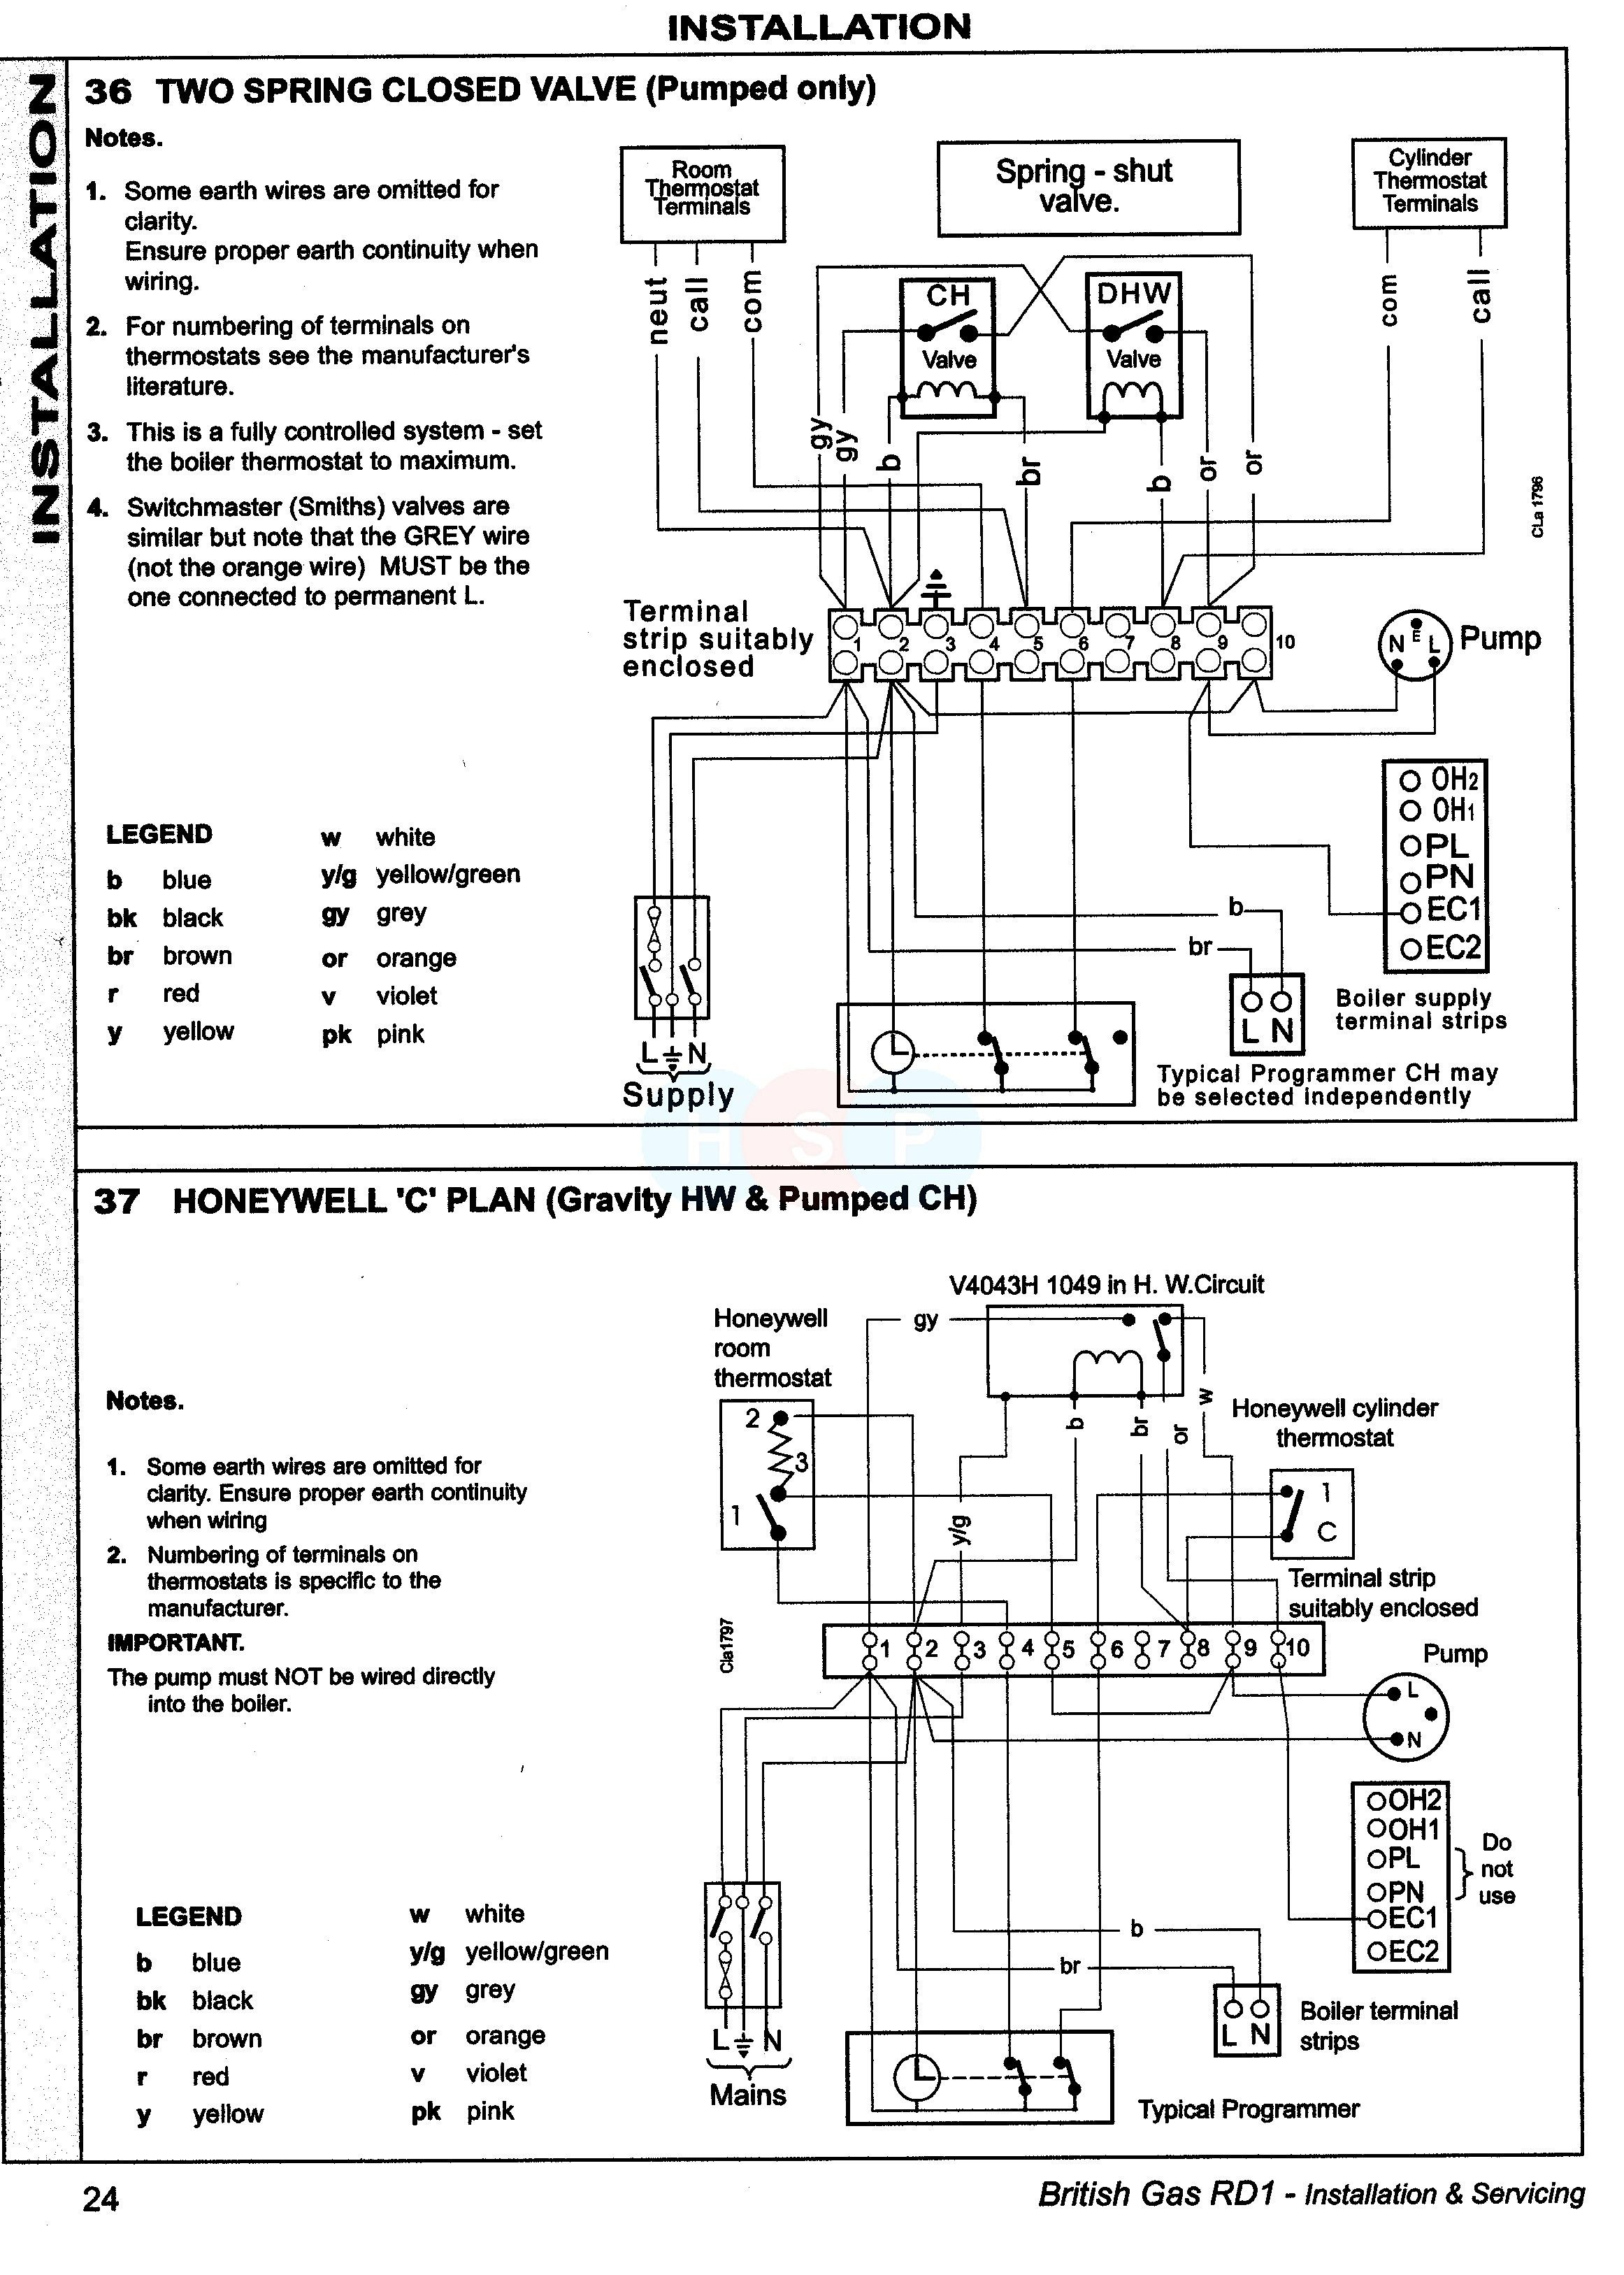 Lovely Wiring Diagram for Honeywell S Plan diagrams